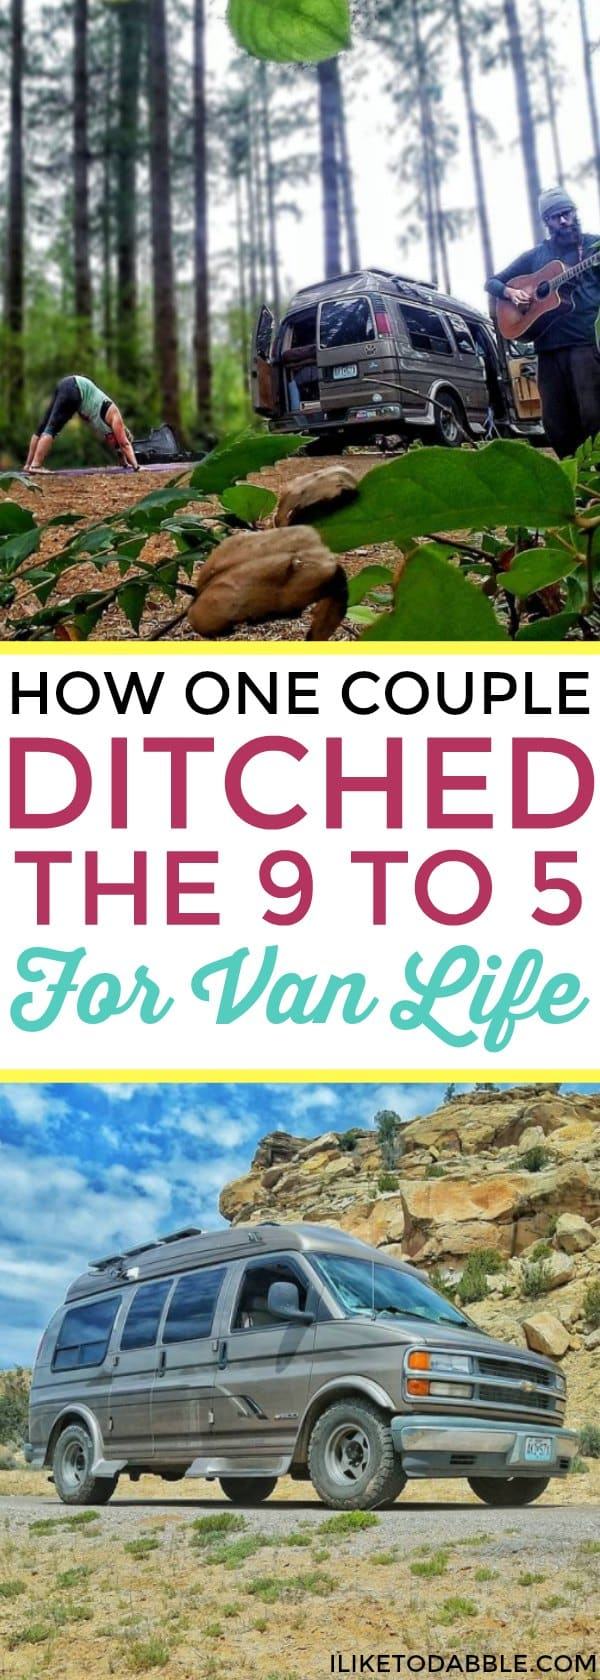 How one couple ditched the 9 to 5 for van life. Van life. Travel full time. Van lifers. Van life movement. Life of adventure. #vanlife #ditchthe9to5 #vanlifer #vanlifediaries #travelfulltime #vanlifemovement